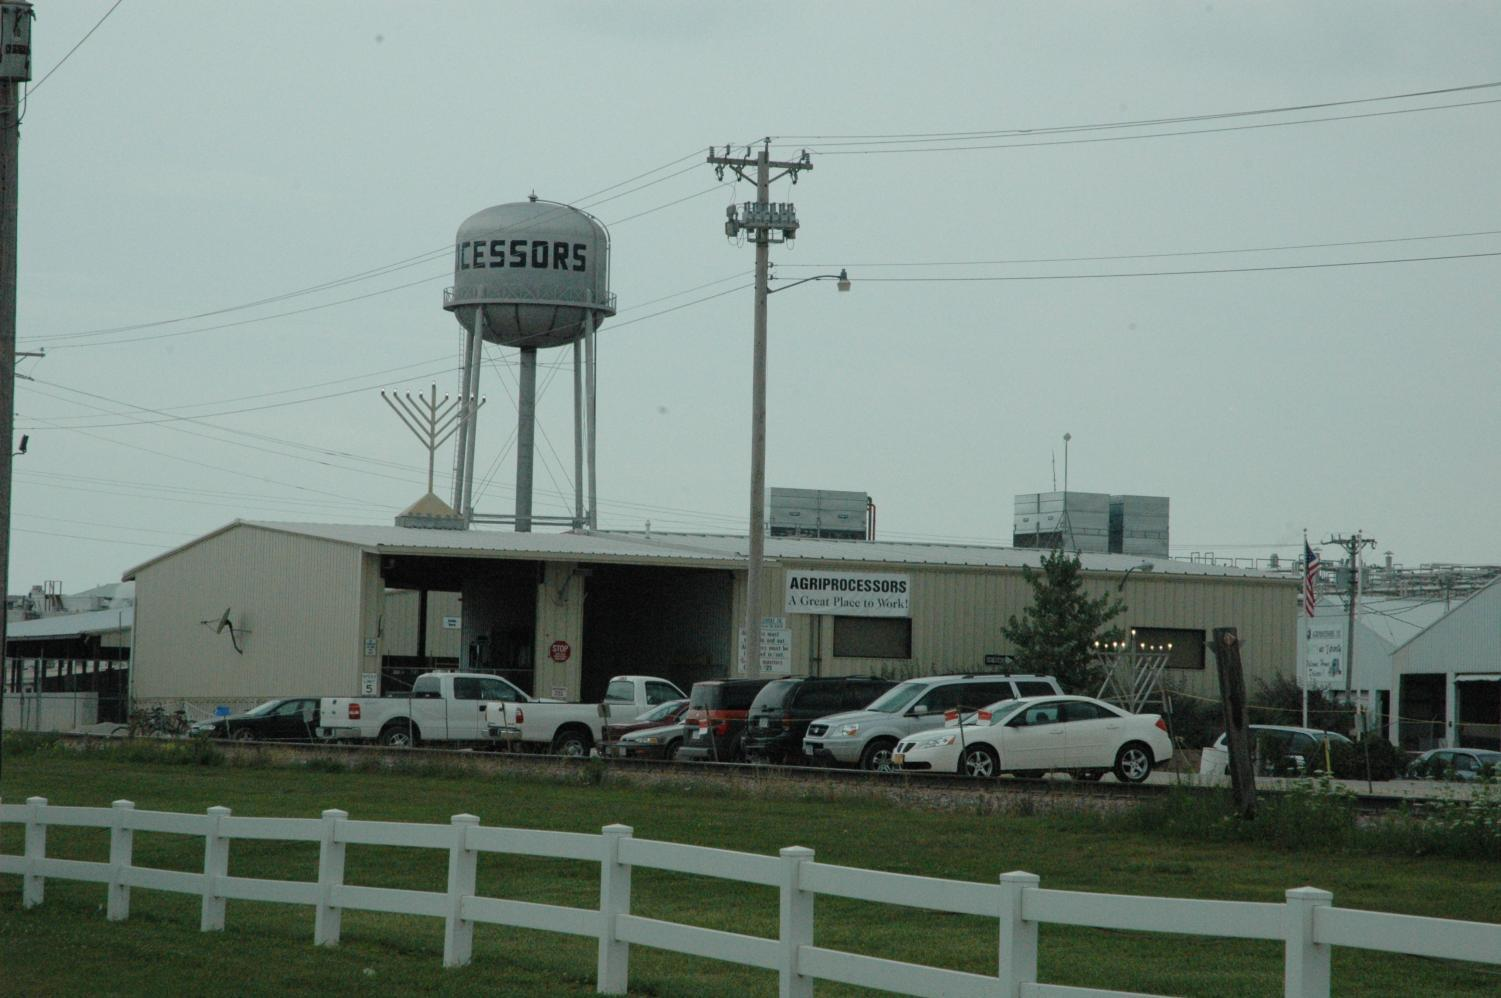 The Agriprocessors plant. (Courtesy Wikimedia Commons)